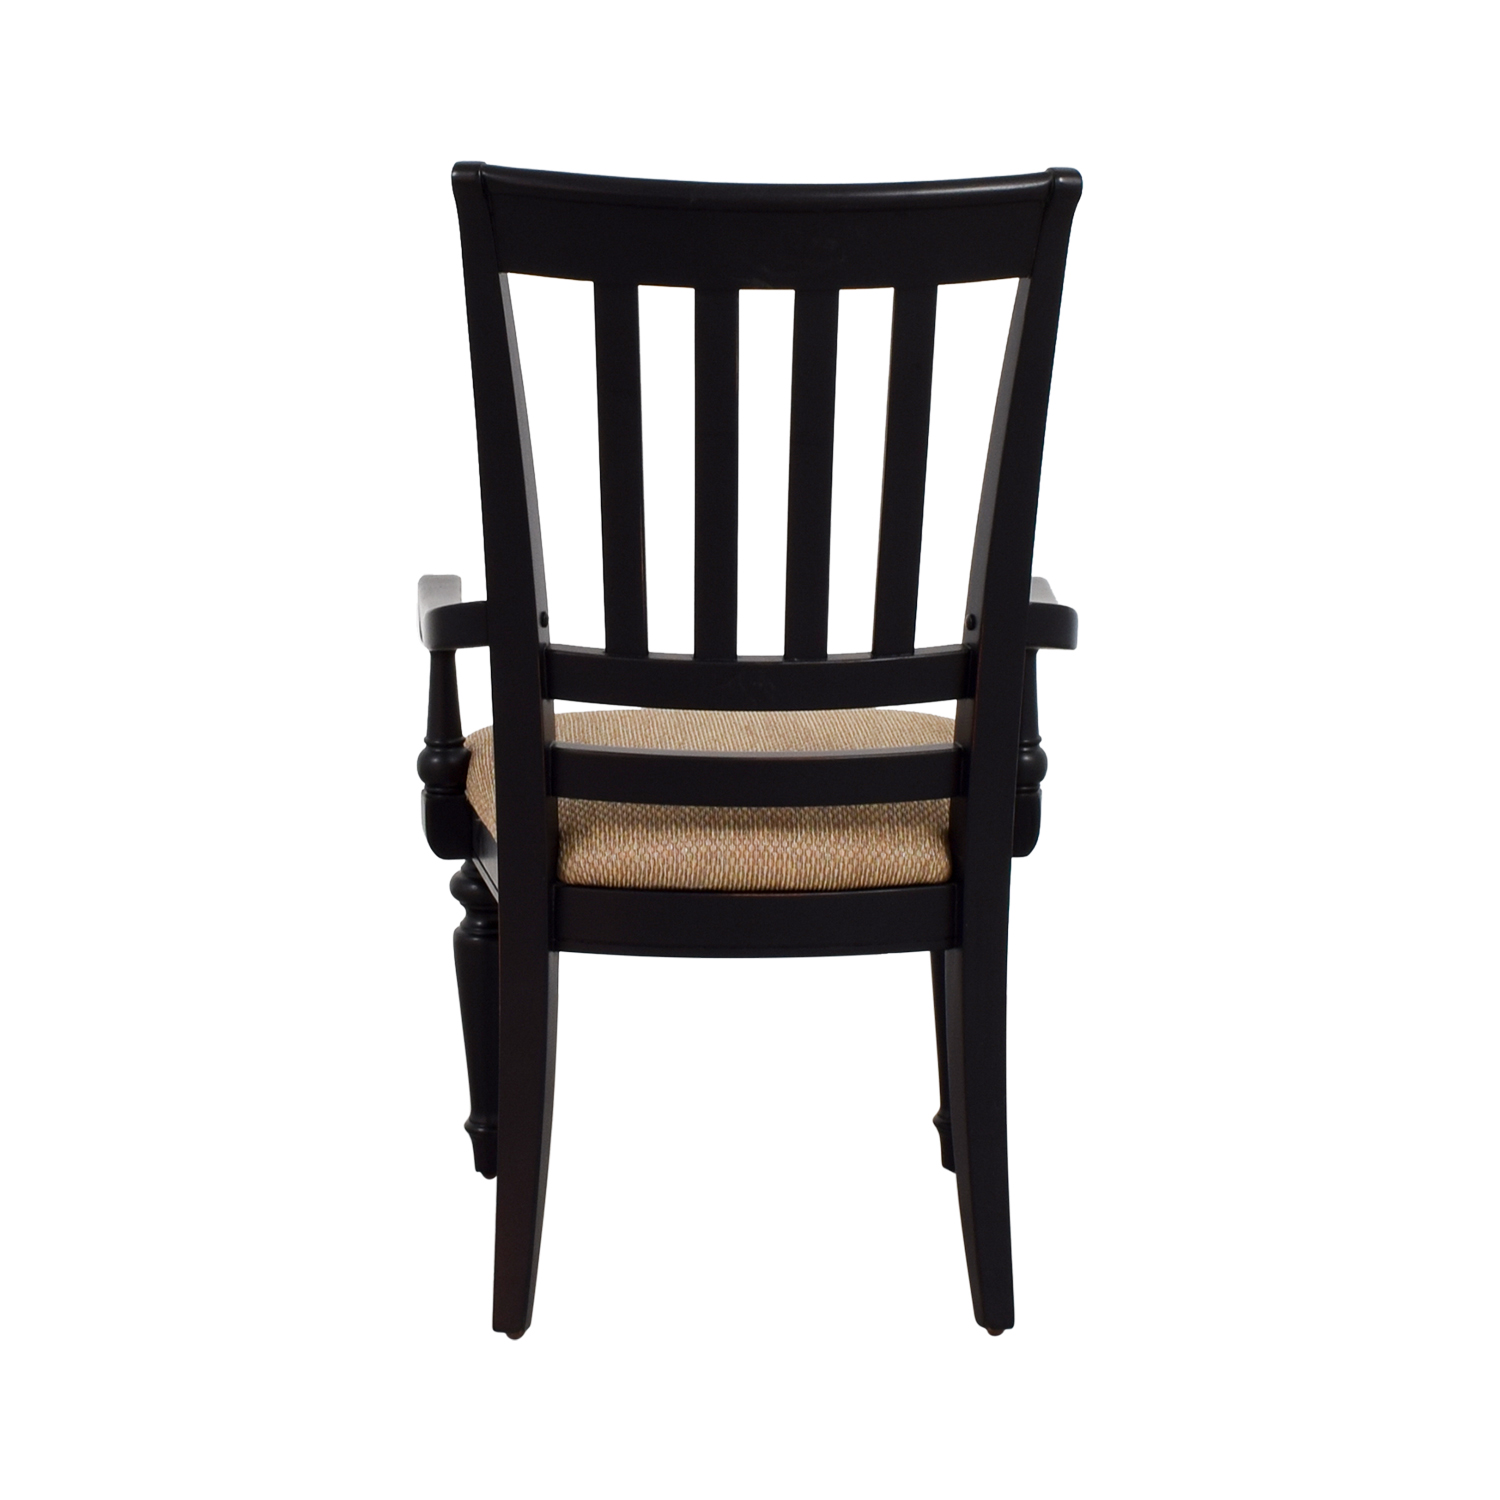 Black Arm Chair with Beige Upholstered Padded Seat sale